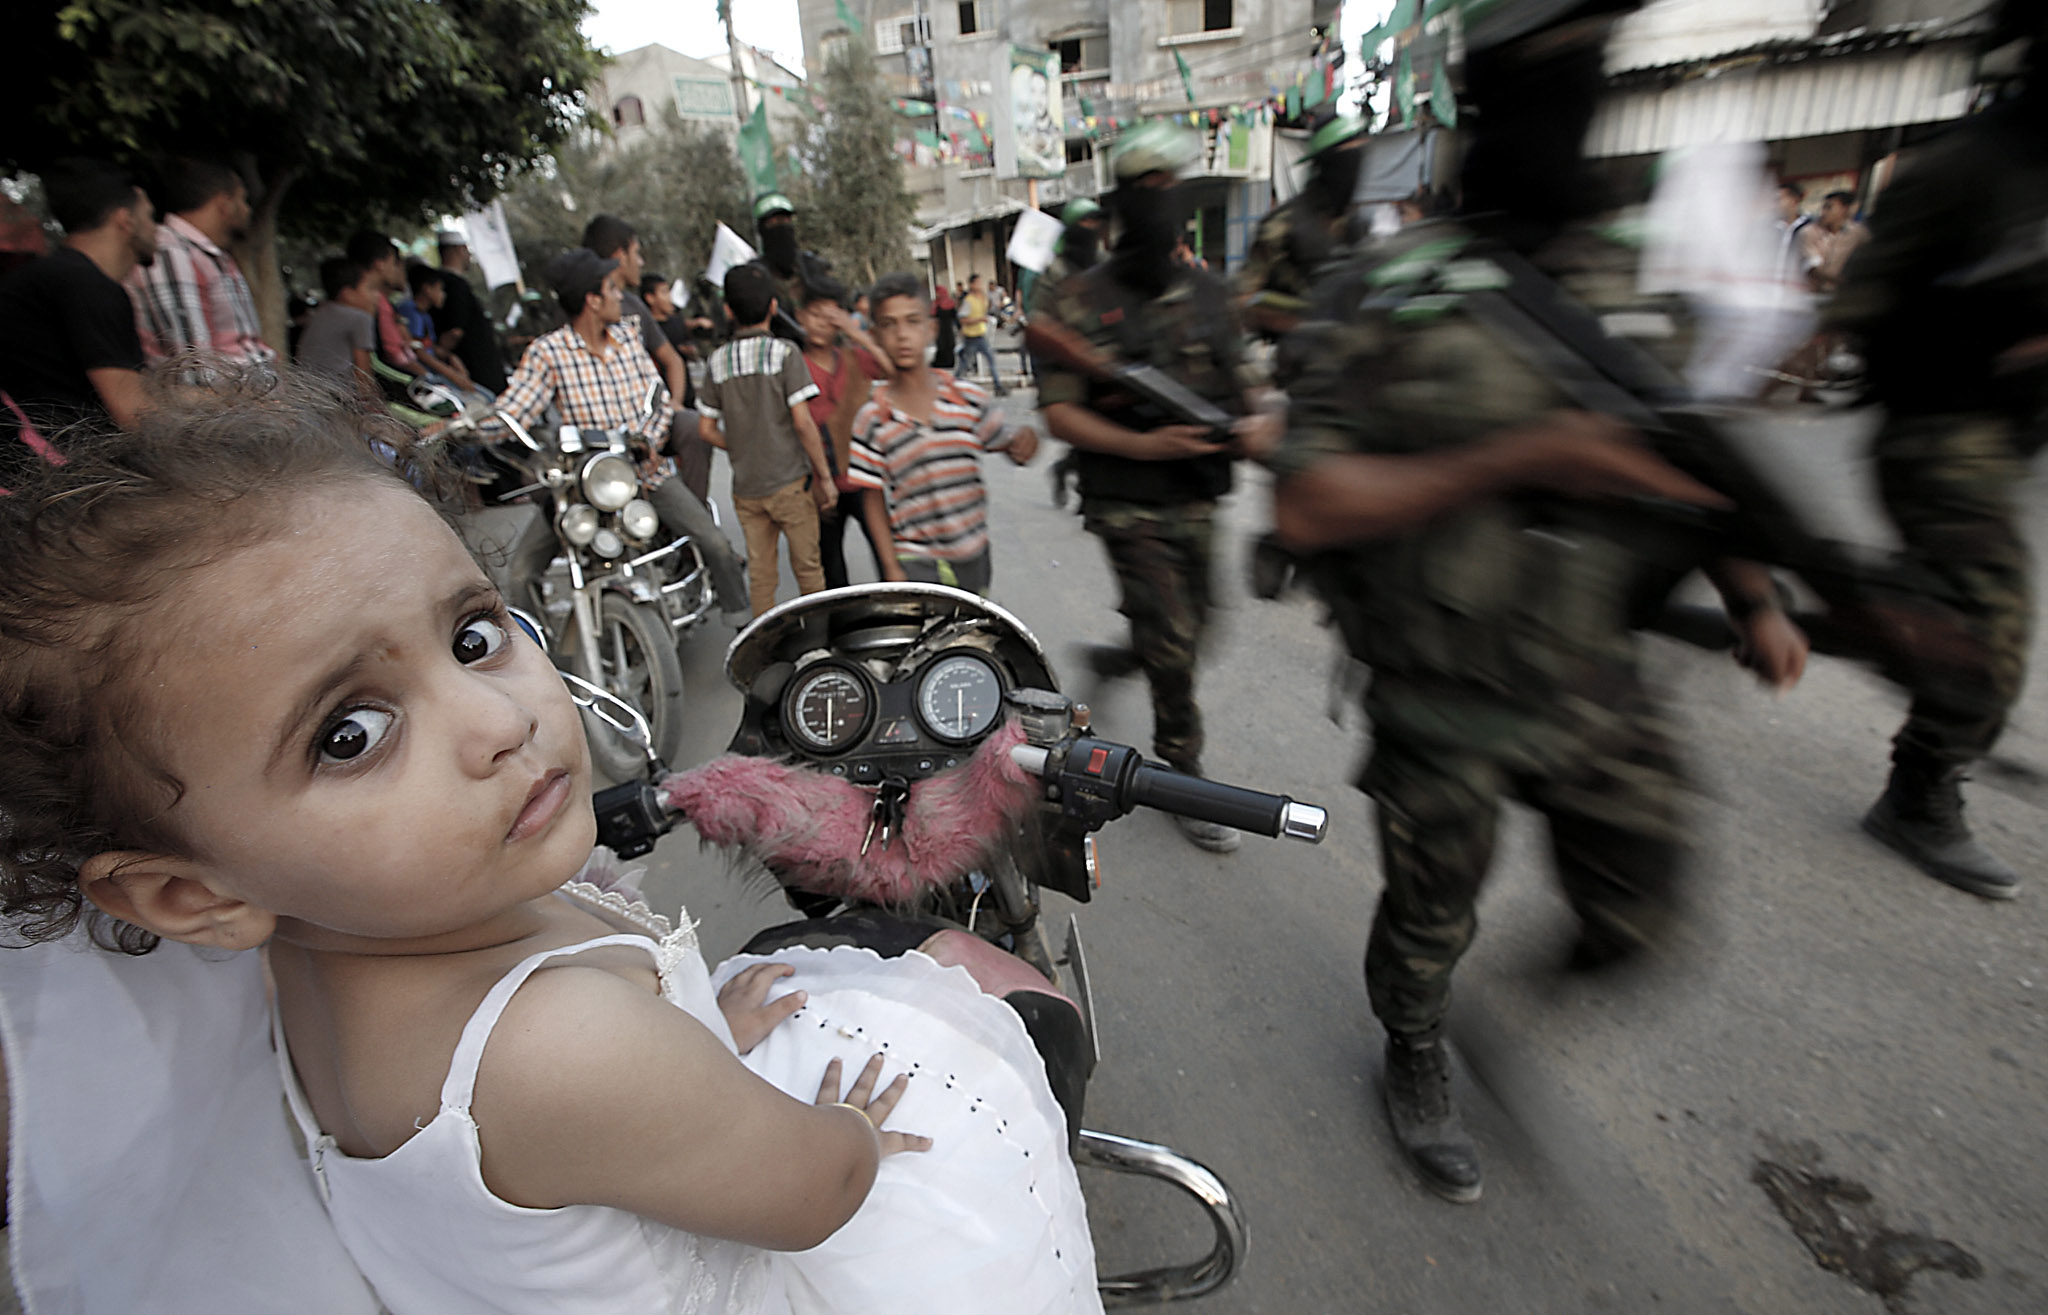 Hamas militants parade...epa04880536 Three-year-old Nour Al Masri (L) watches as the Ezz Al-Din Al-Qassam militia, the military wing of the Hamas movement,  parades in the streets of Beit Hanun in the northern Gaza Strip, 11 August 2015.  EPA/MOHAMMED SABER